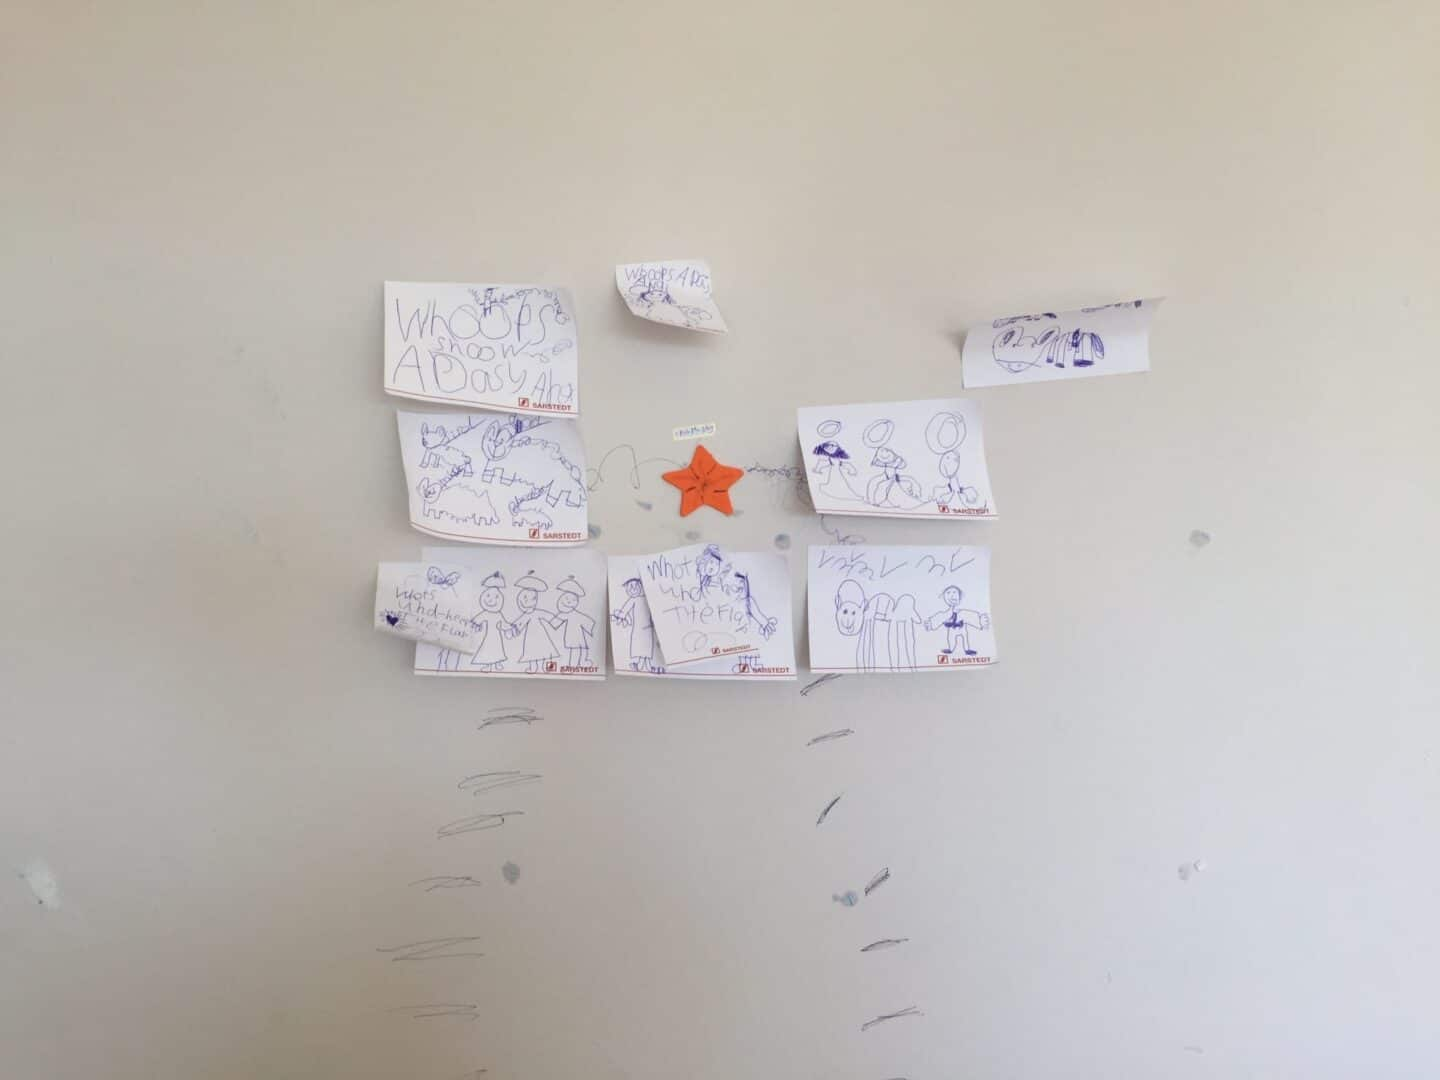 Ava's wall with posits and scribbles